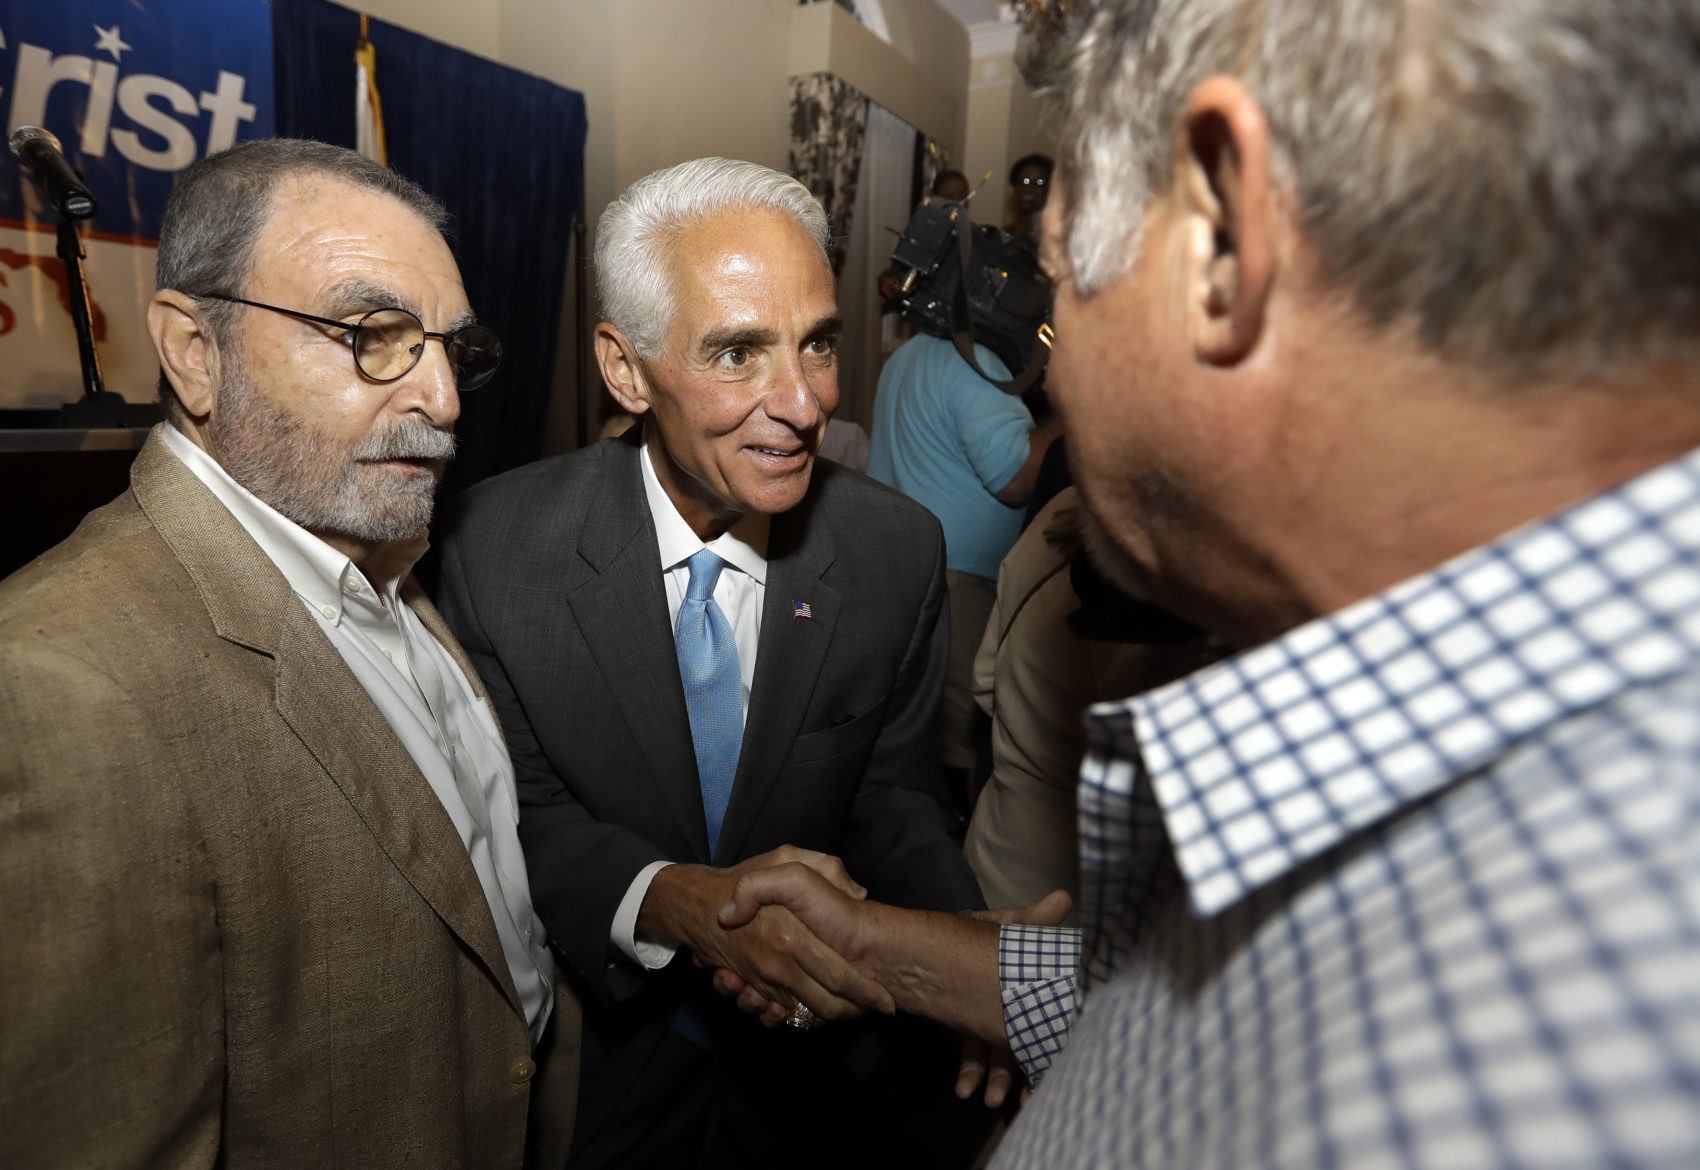 Rep. Charlie Crist, D-Fla., center, shakes hands with supporters after being elected to the U.S. House of Representatives Tuesday, Nov. 8, 2016, in St. Pete Beach, Fla. (Chris O'Meara/AP)